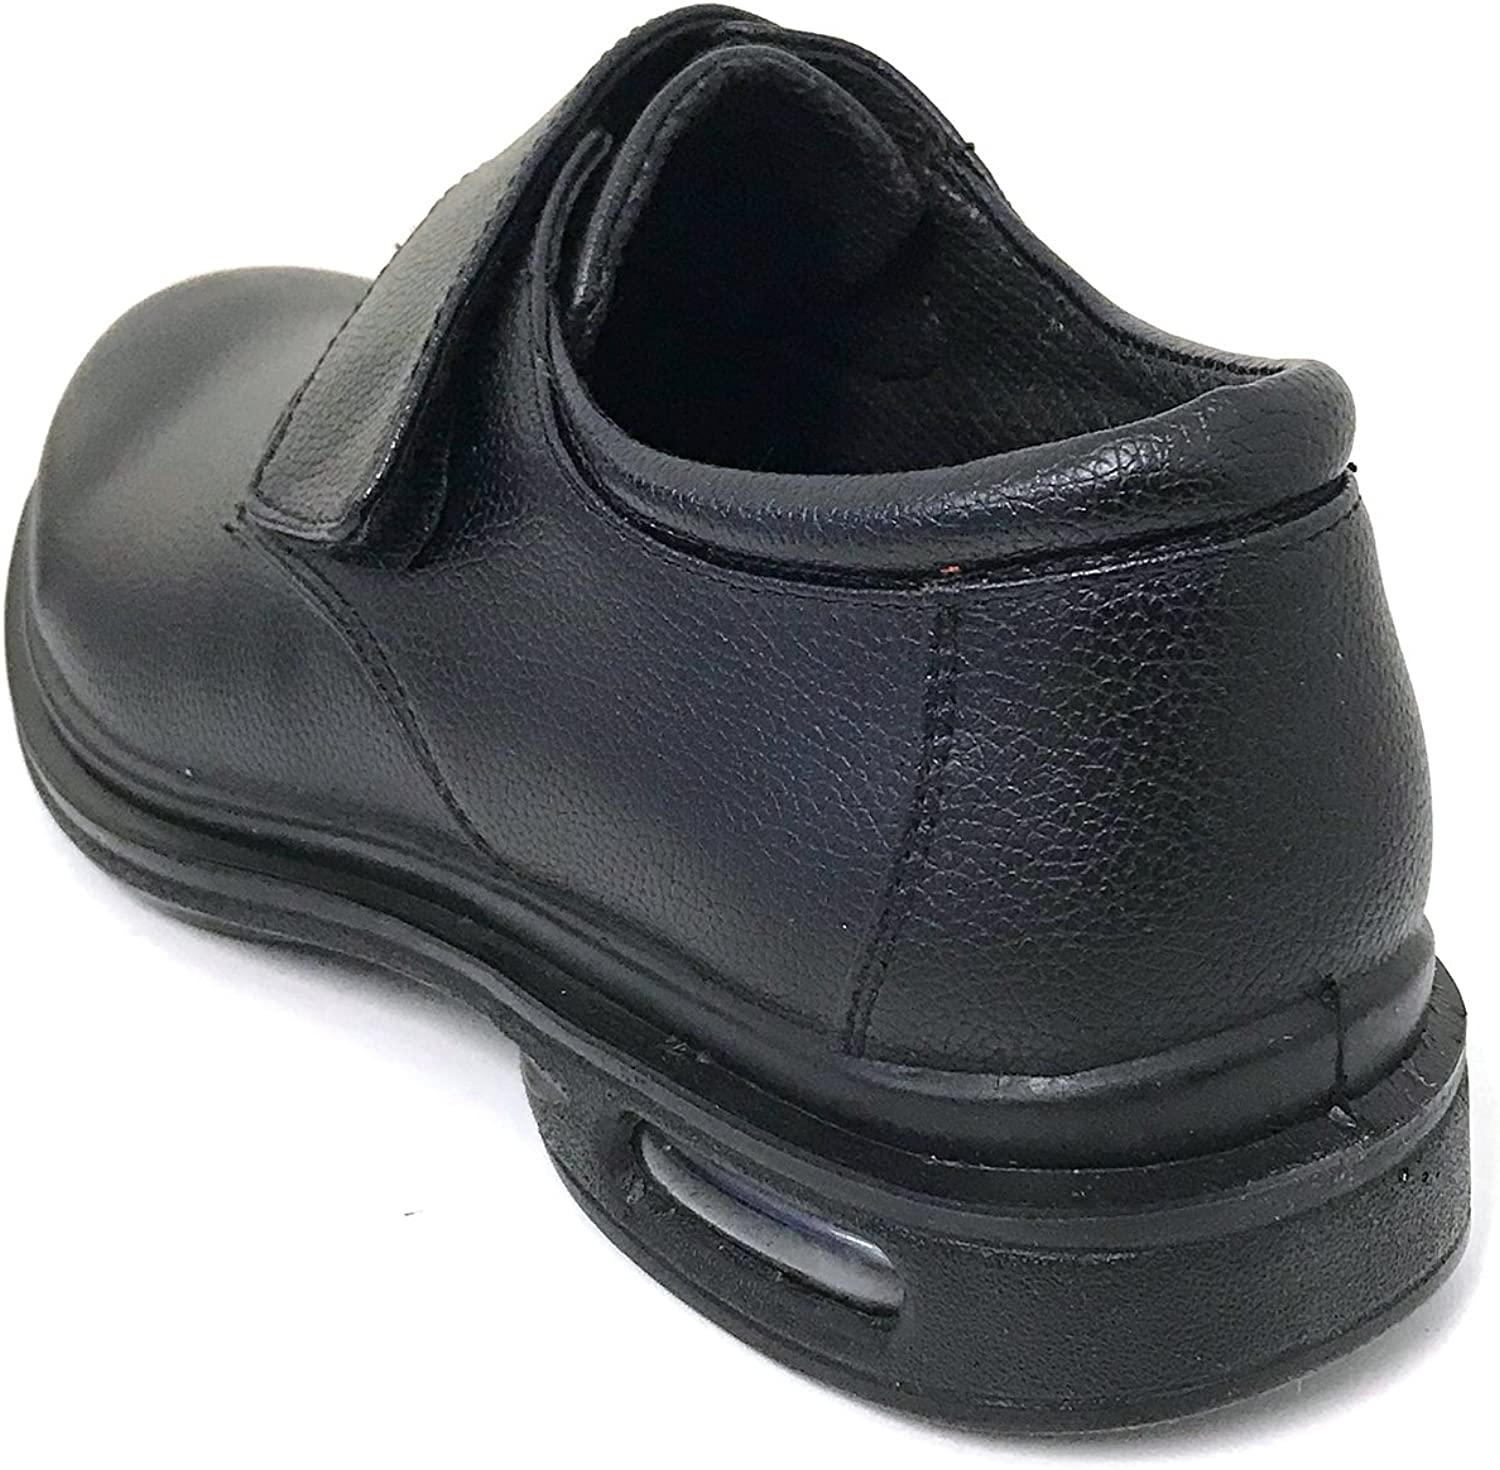 G4U-XCL AK03S Mens Comfort Work Shoe Slip and Oil Resistant Restaurant Air Cushion Loafers